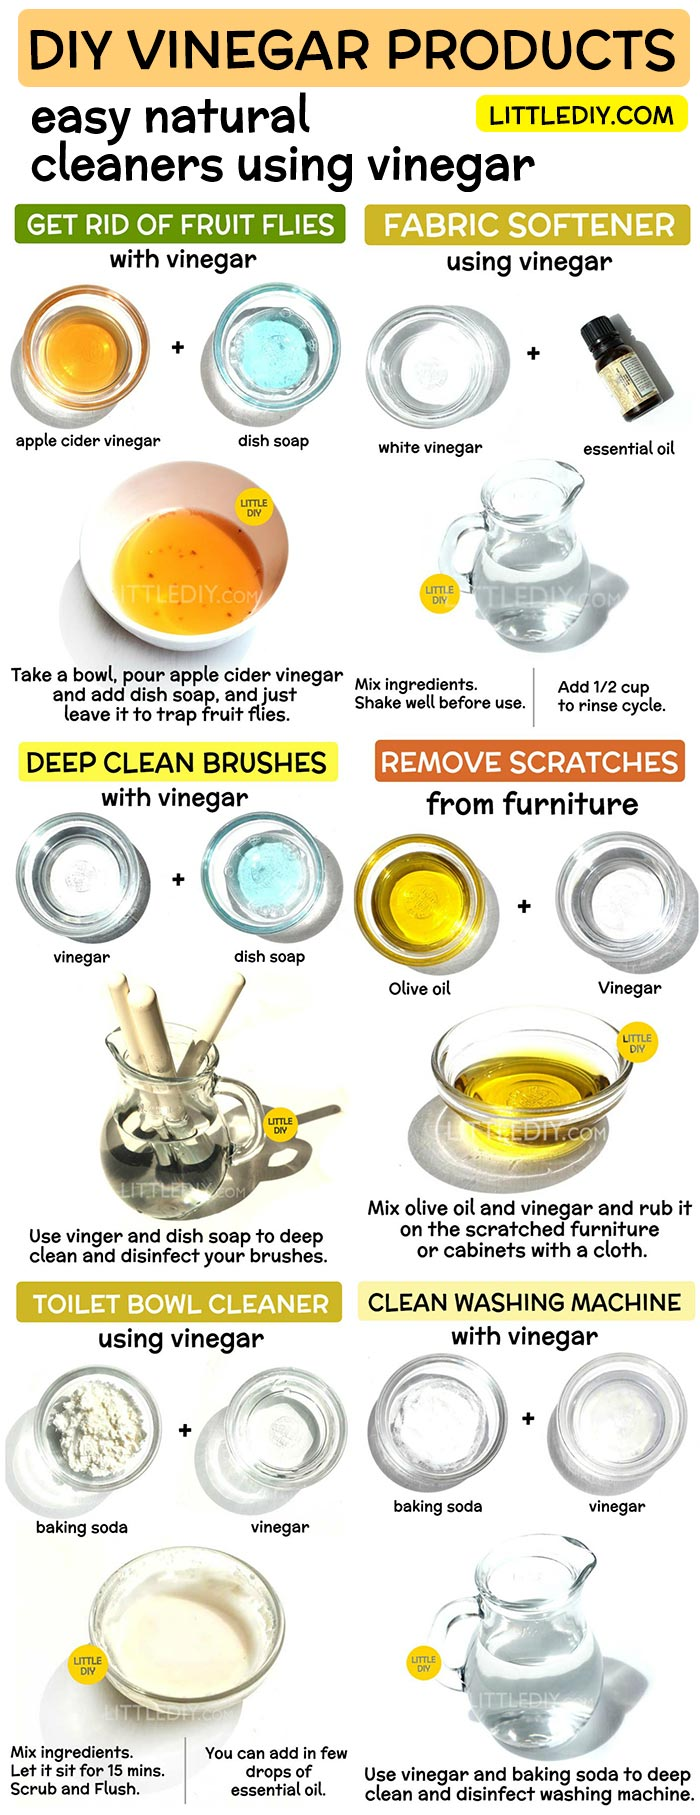 VINEGAR PRODUCTS